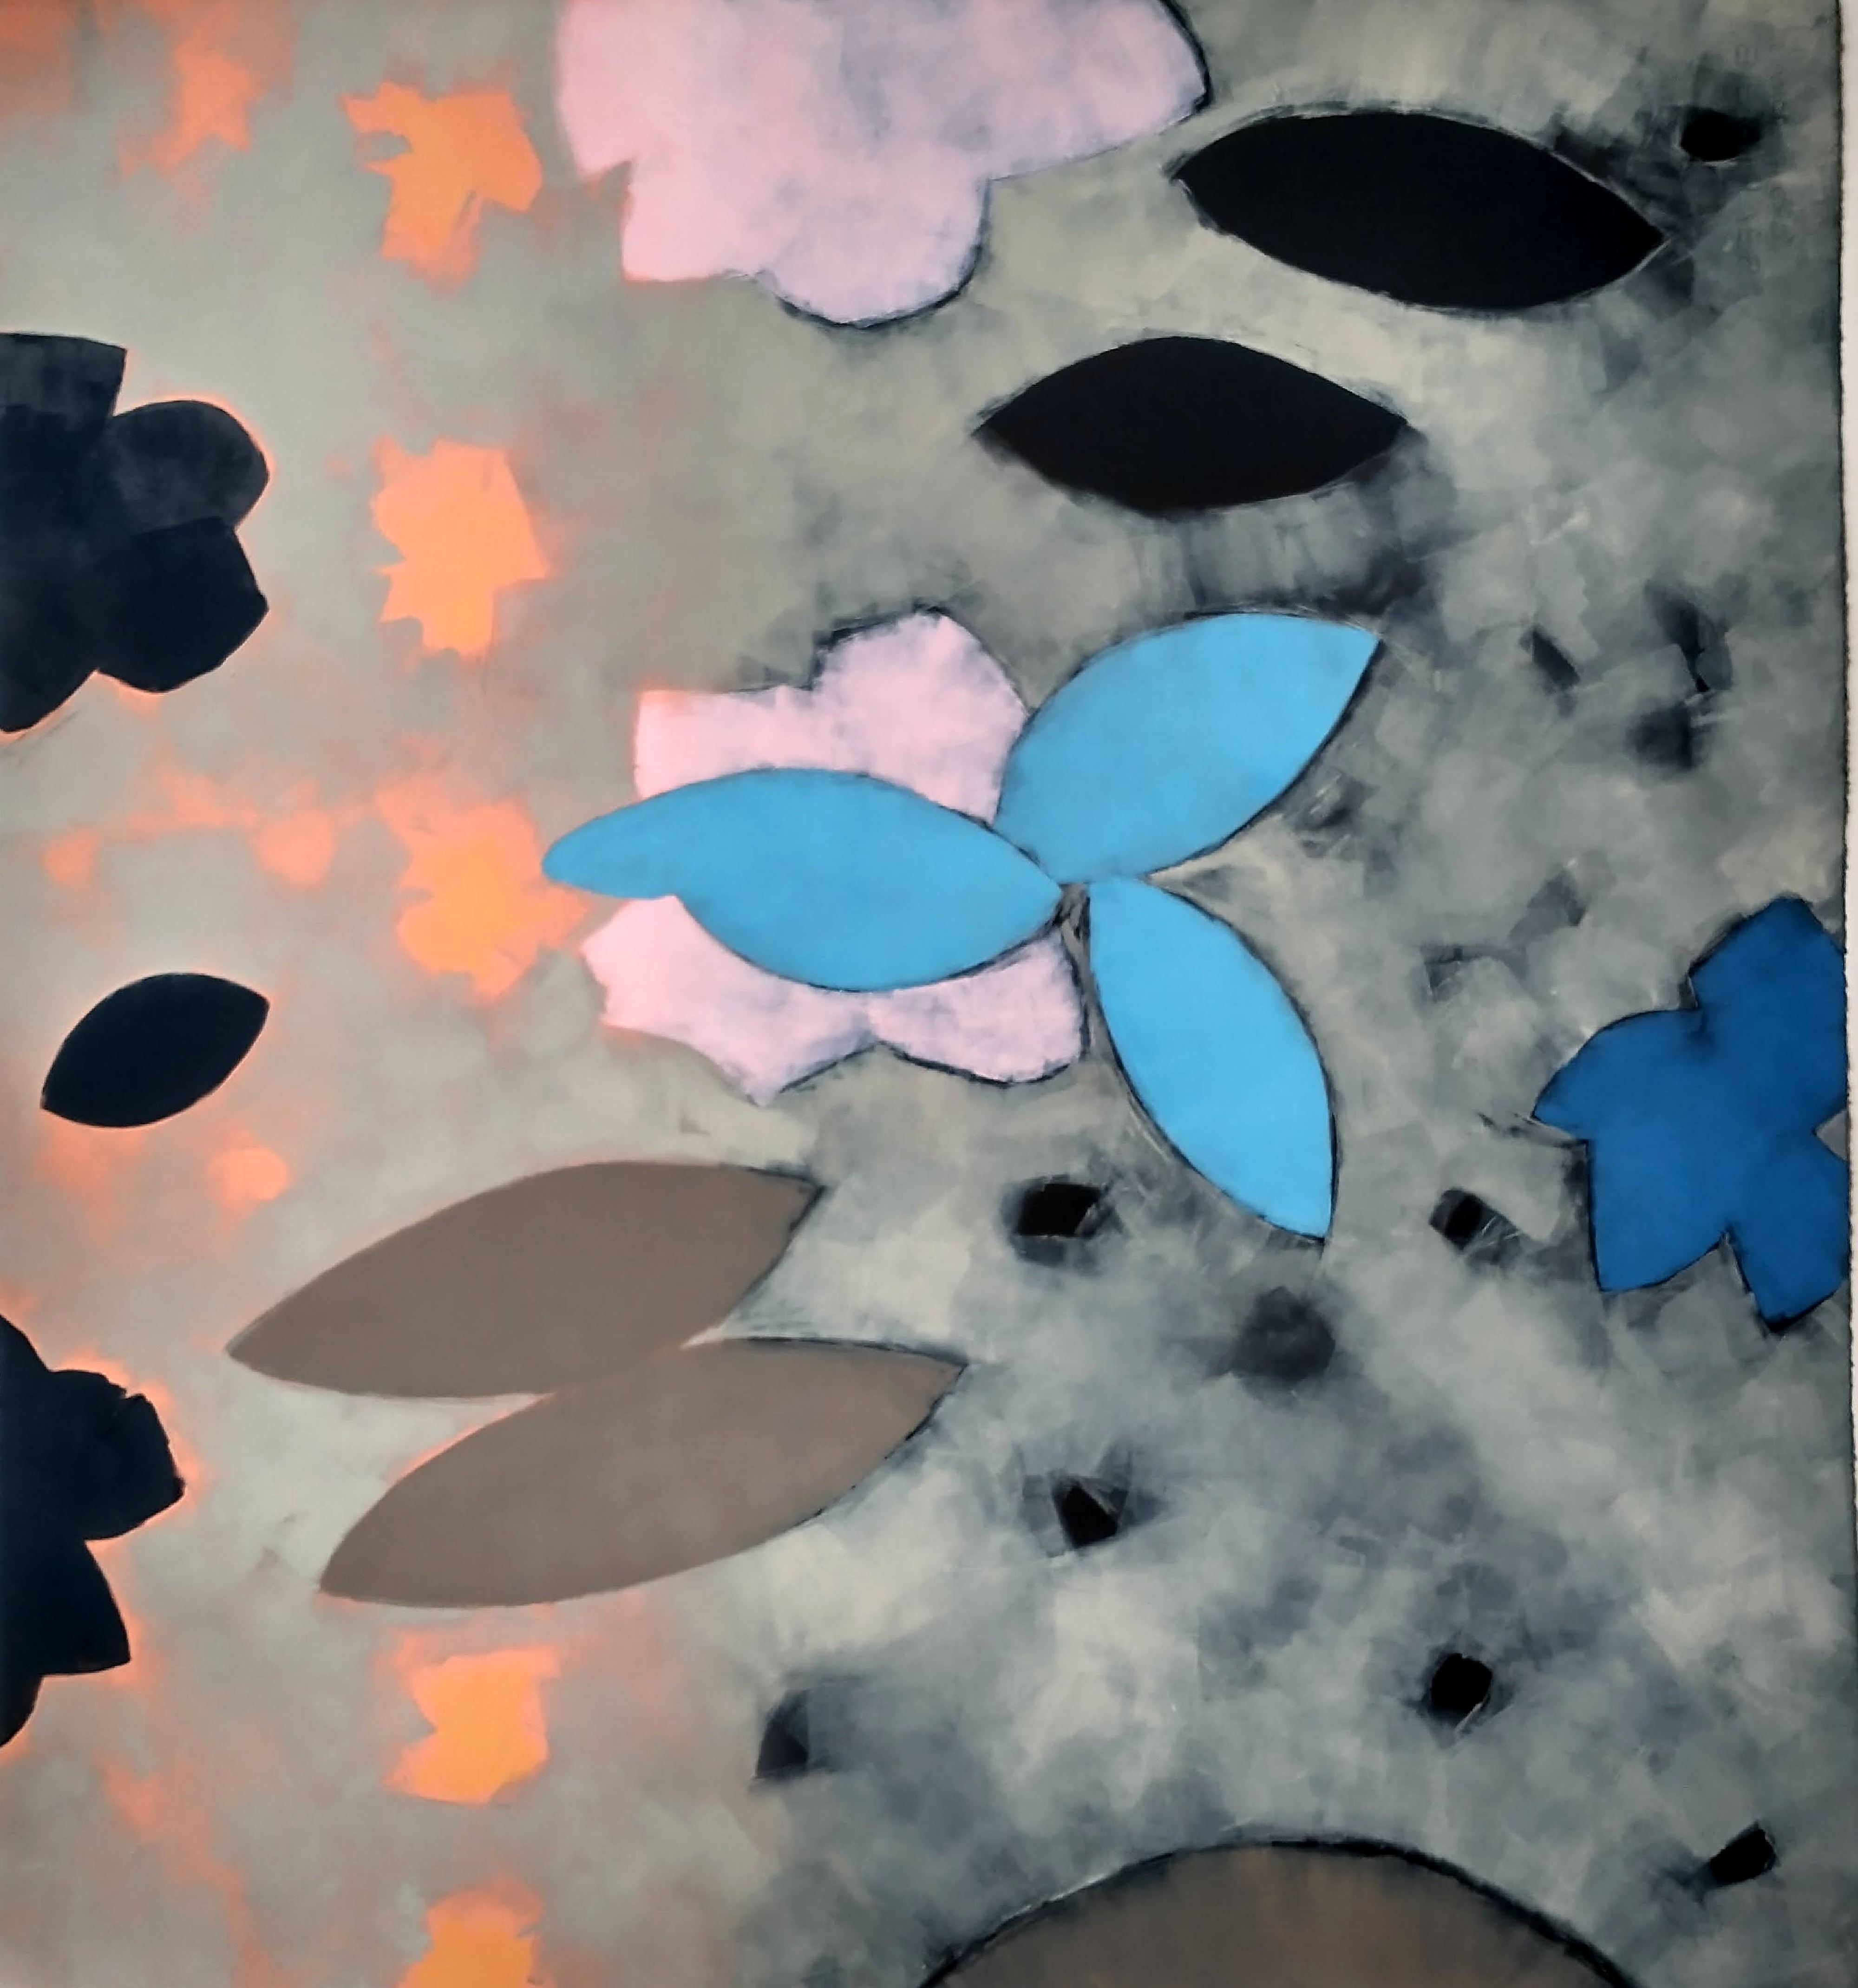 Shadows From The Sky 1 by Katharine McGuinness | ArtworkNetwork.com